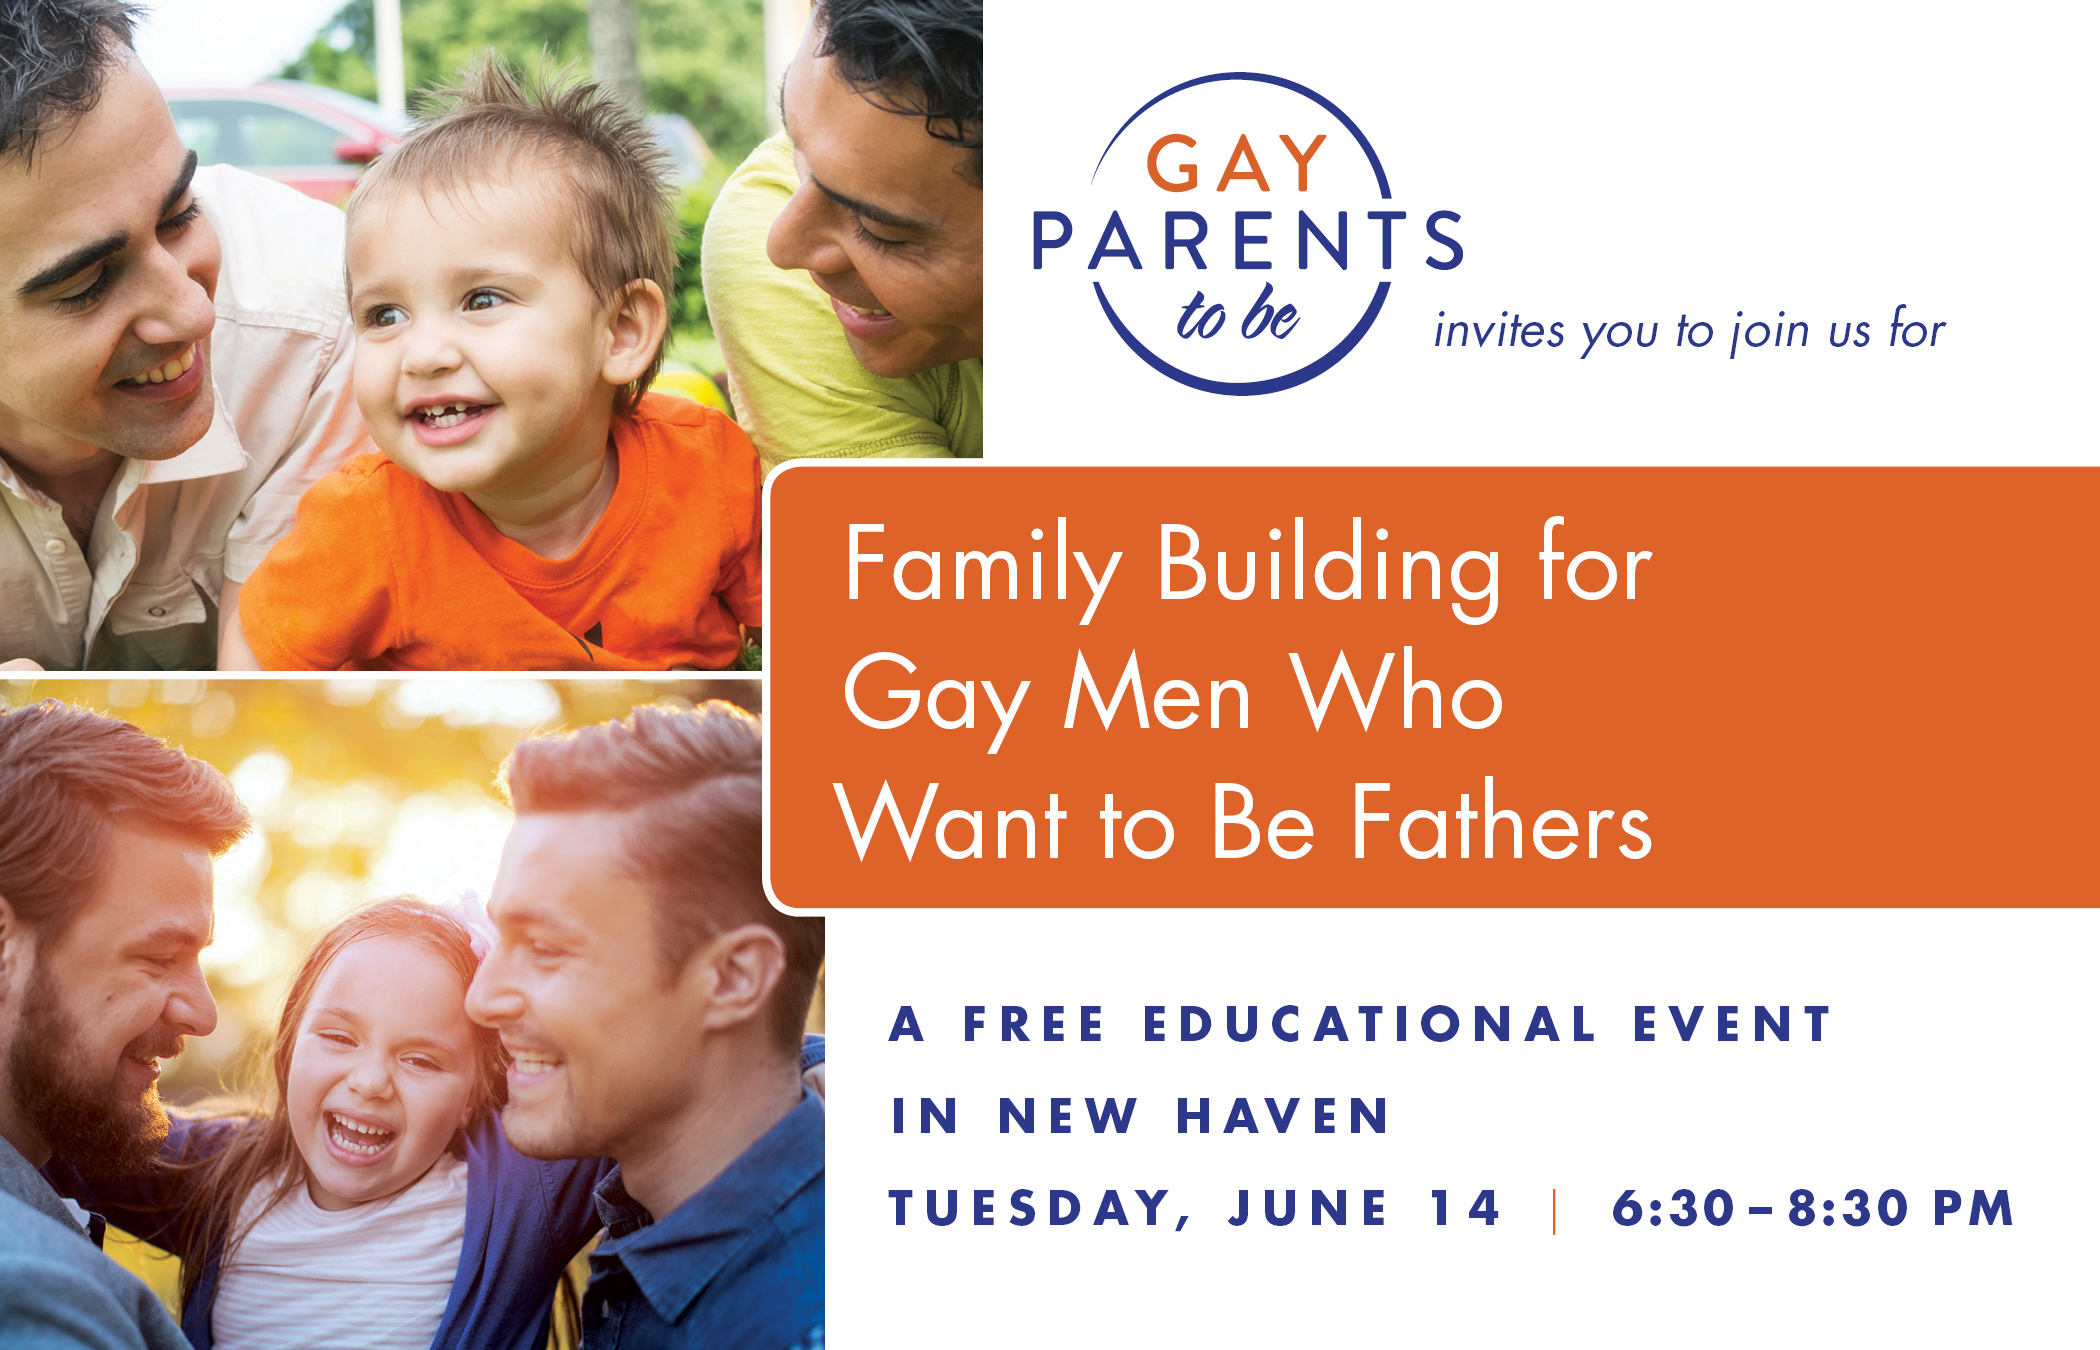 GPTB New Haven Gay Parenting Event